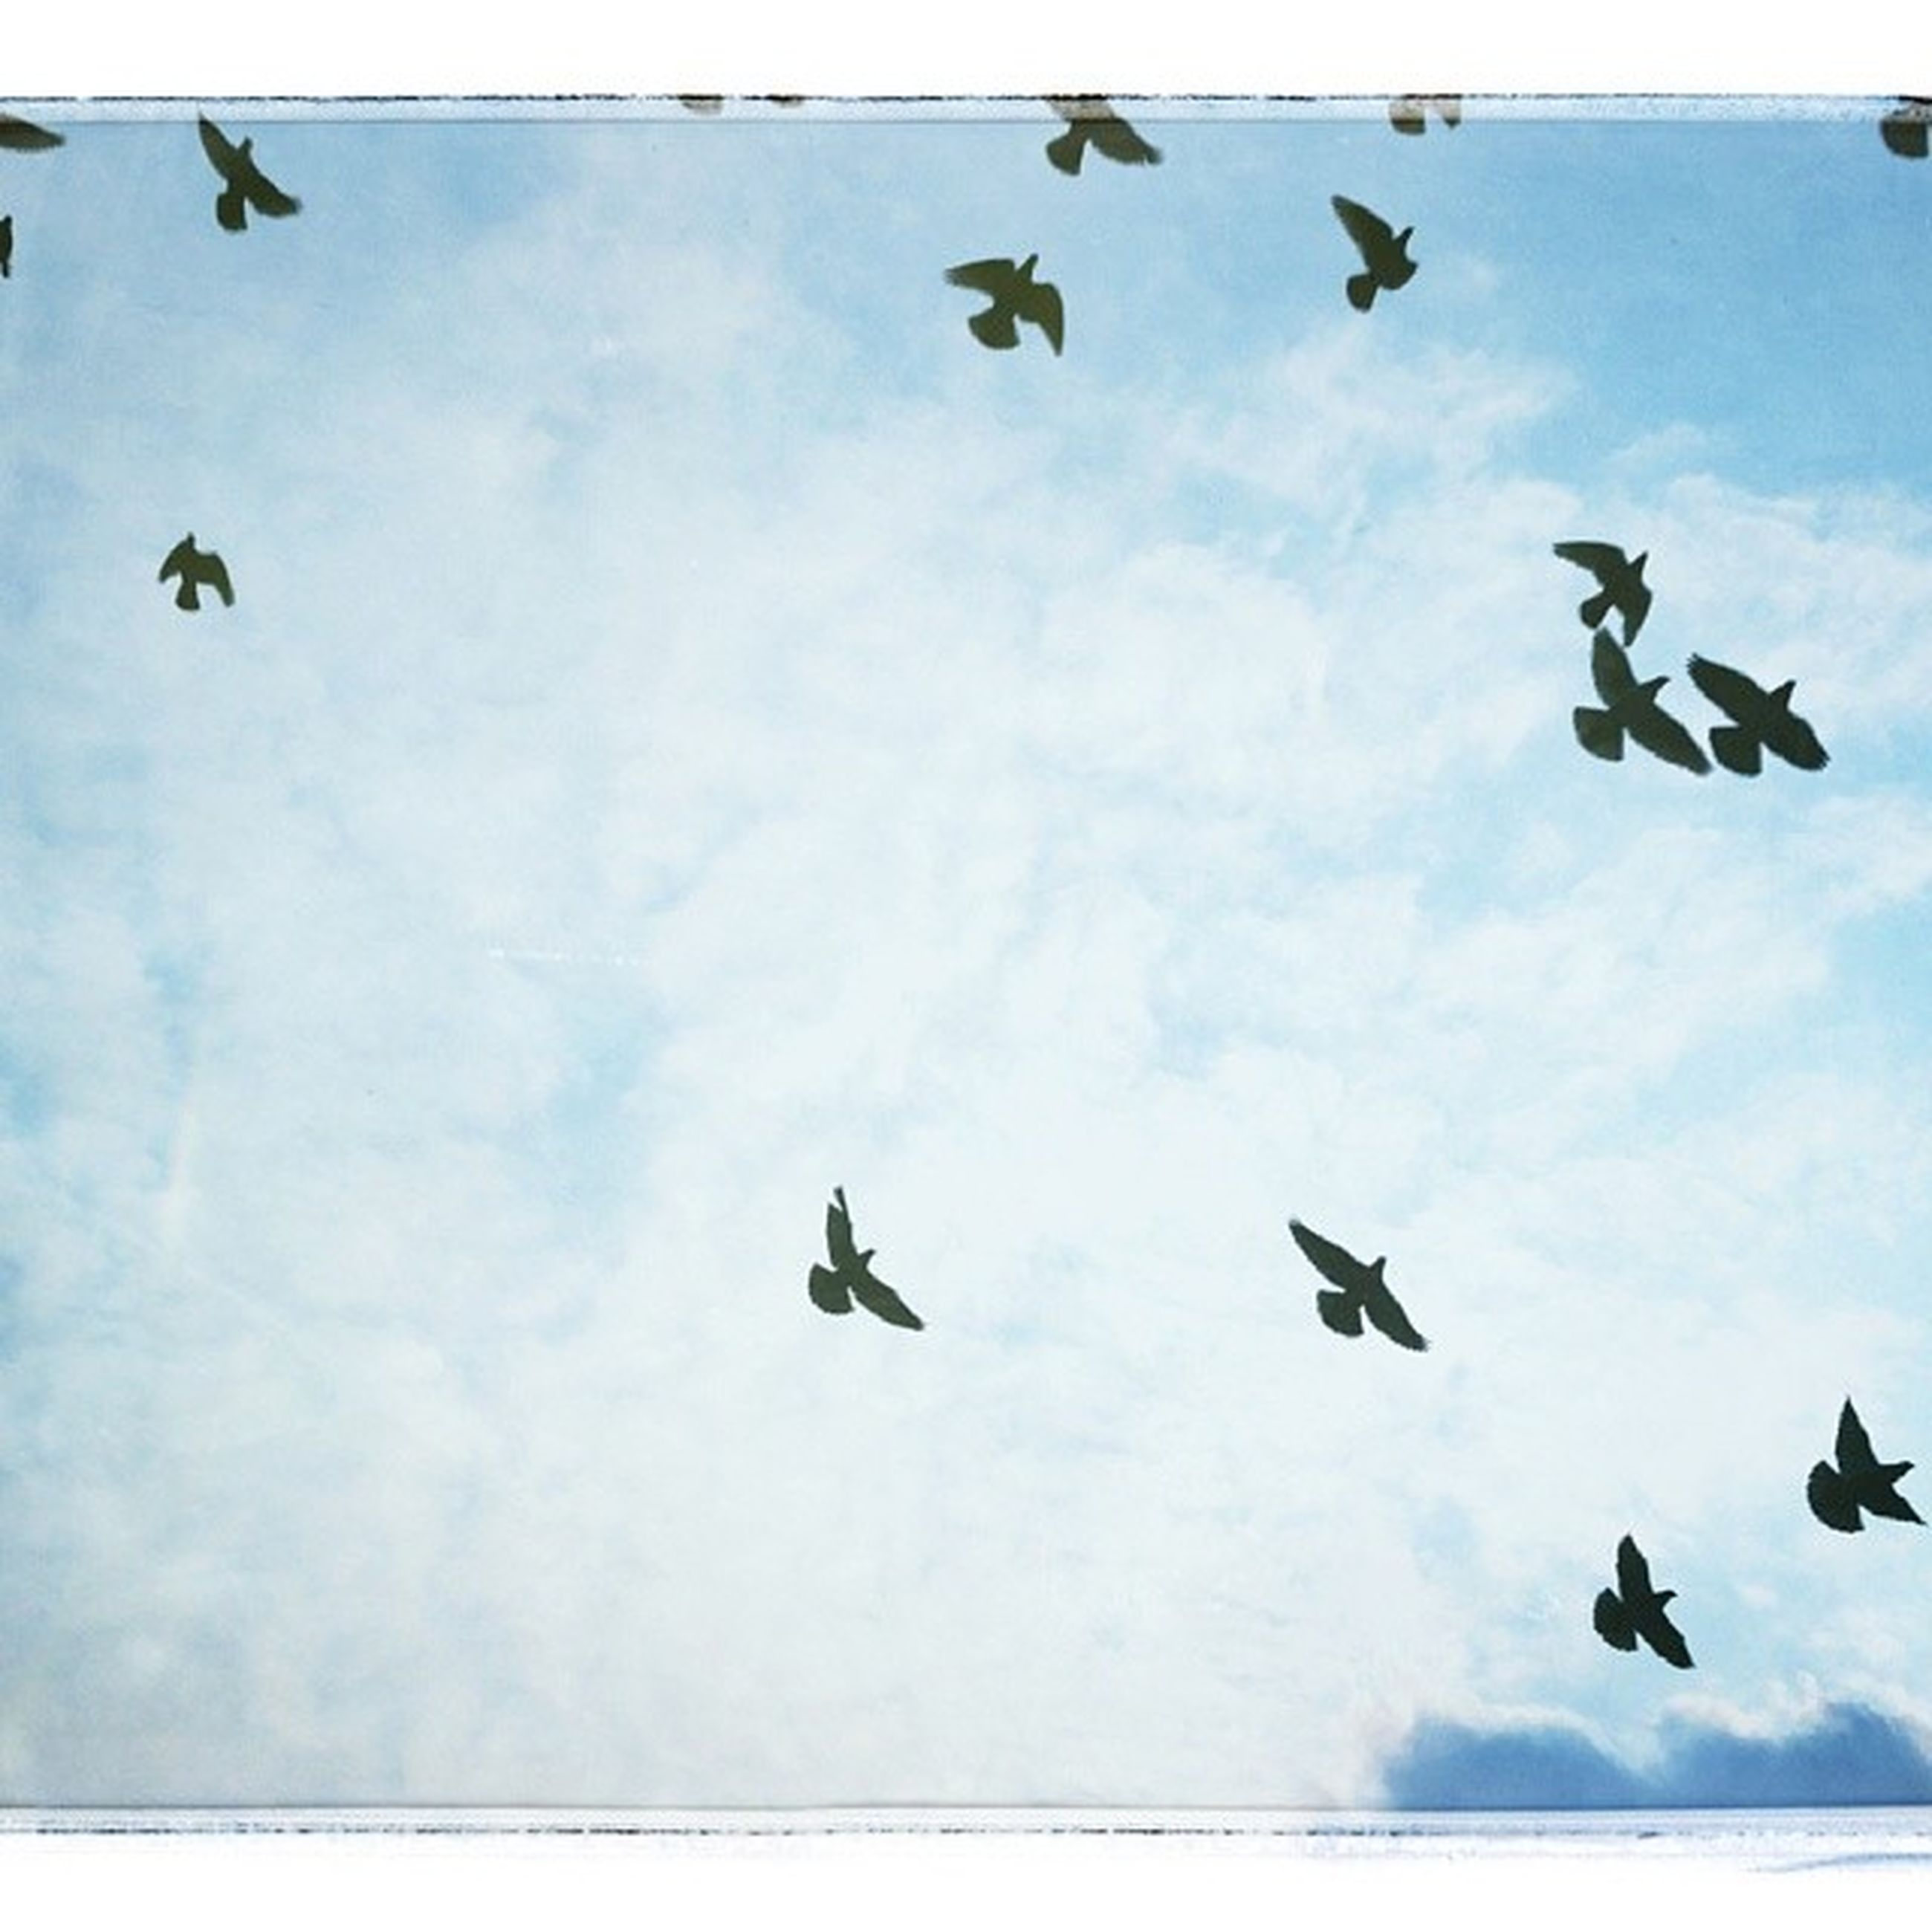 flying, low angle view, sky, mid-air, bird, cloud - sky, transportation, air vehicle, animal themes, wildlife, airplane, animals in the wild, cloud, motion, silhouette, mode of transport, cloudy, spread wings, on the move